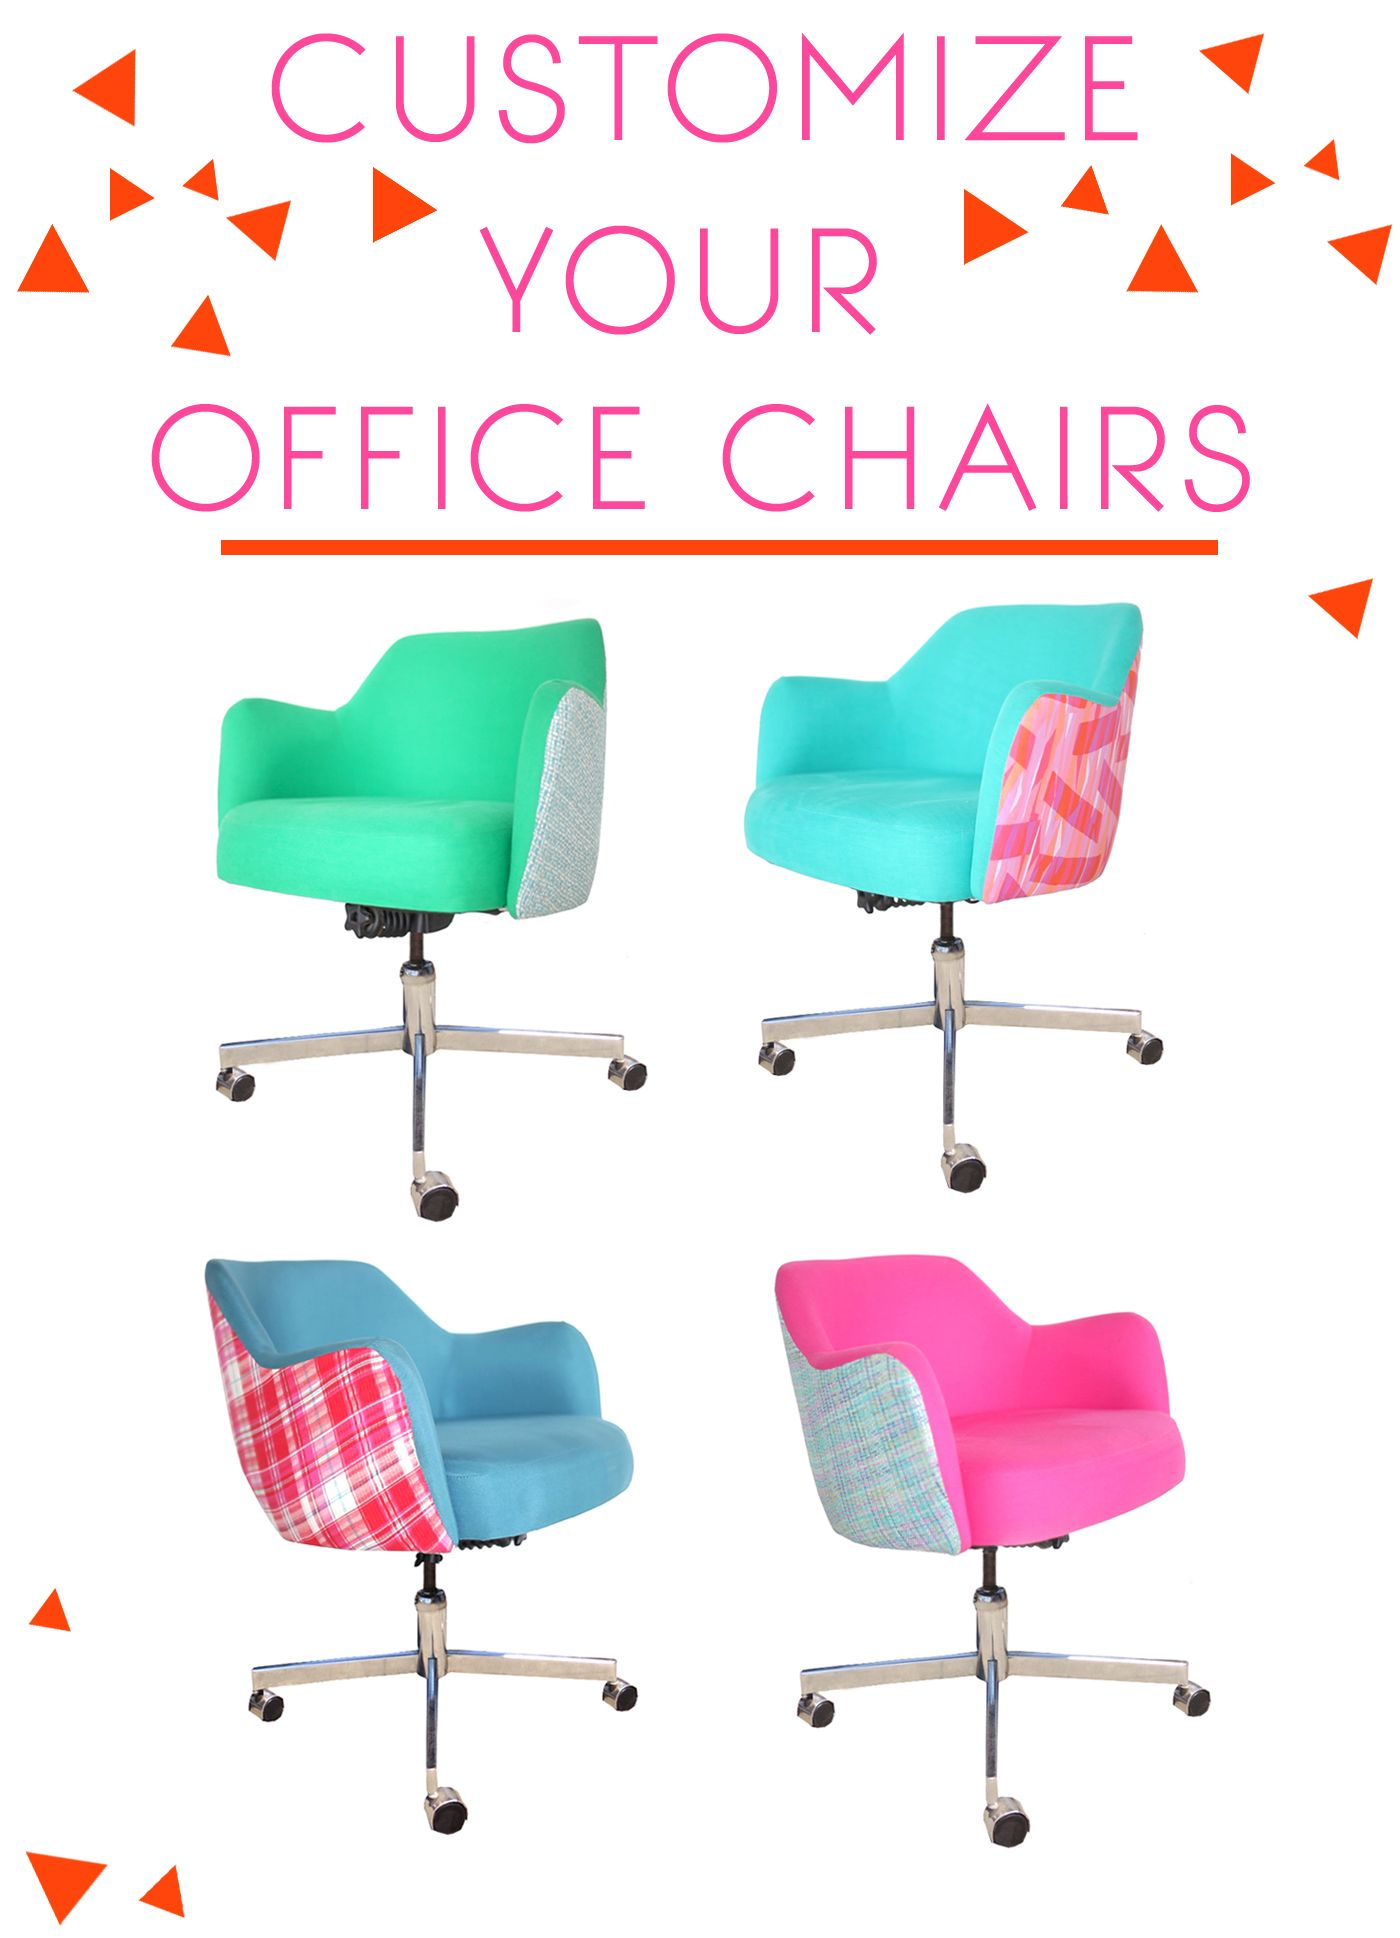 Find This Pin And More On Office Chairs.